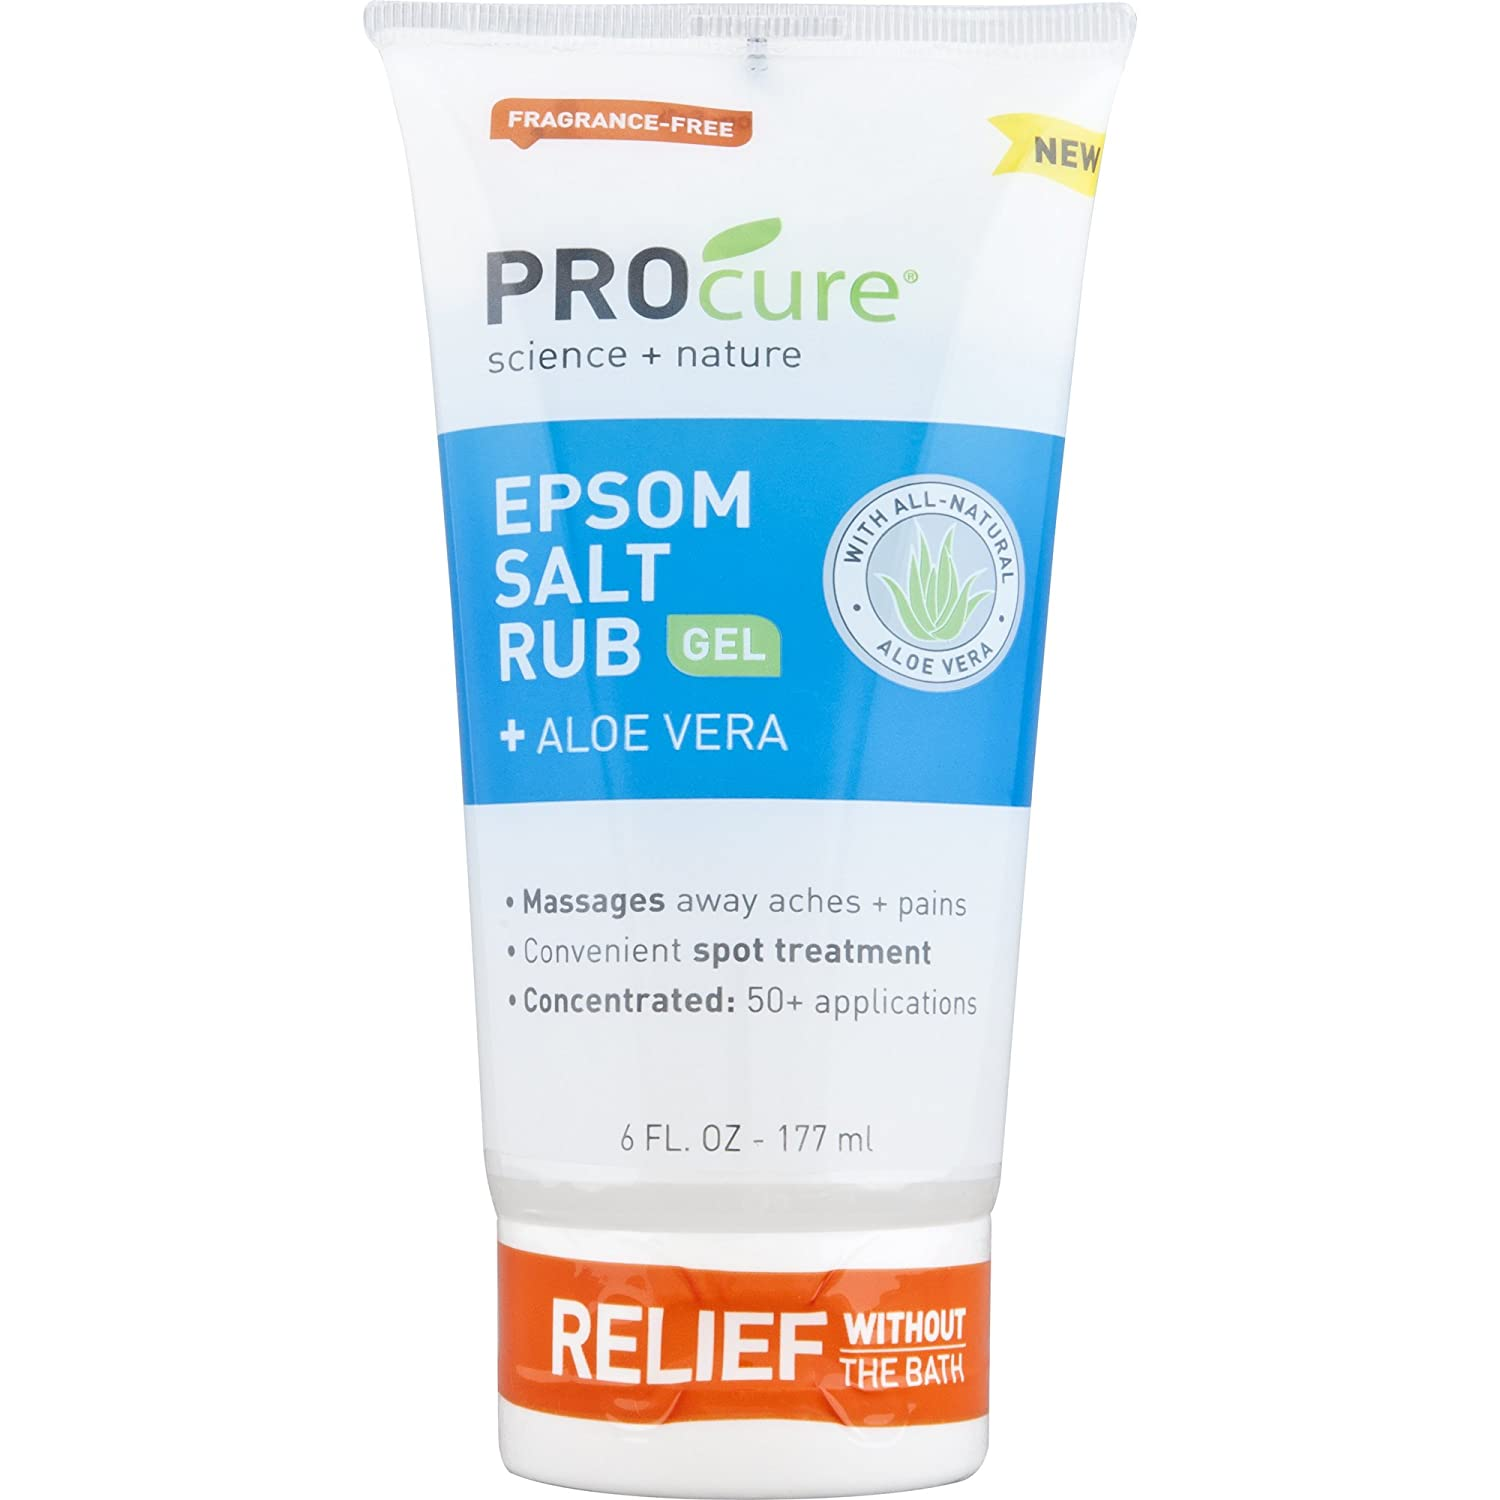 PROCURE Epsom Salt Rub Gel with Aloe Vera, 6 Fluid oz. (Pack of 3);Soothes Muscle Tension, Aches & Pains Directly Where It Hurts. Profoot Footcare Products 52520